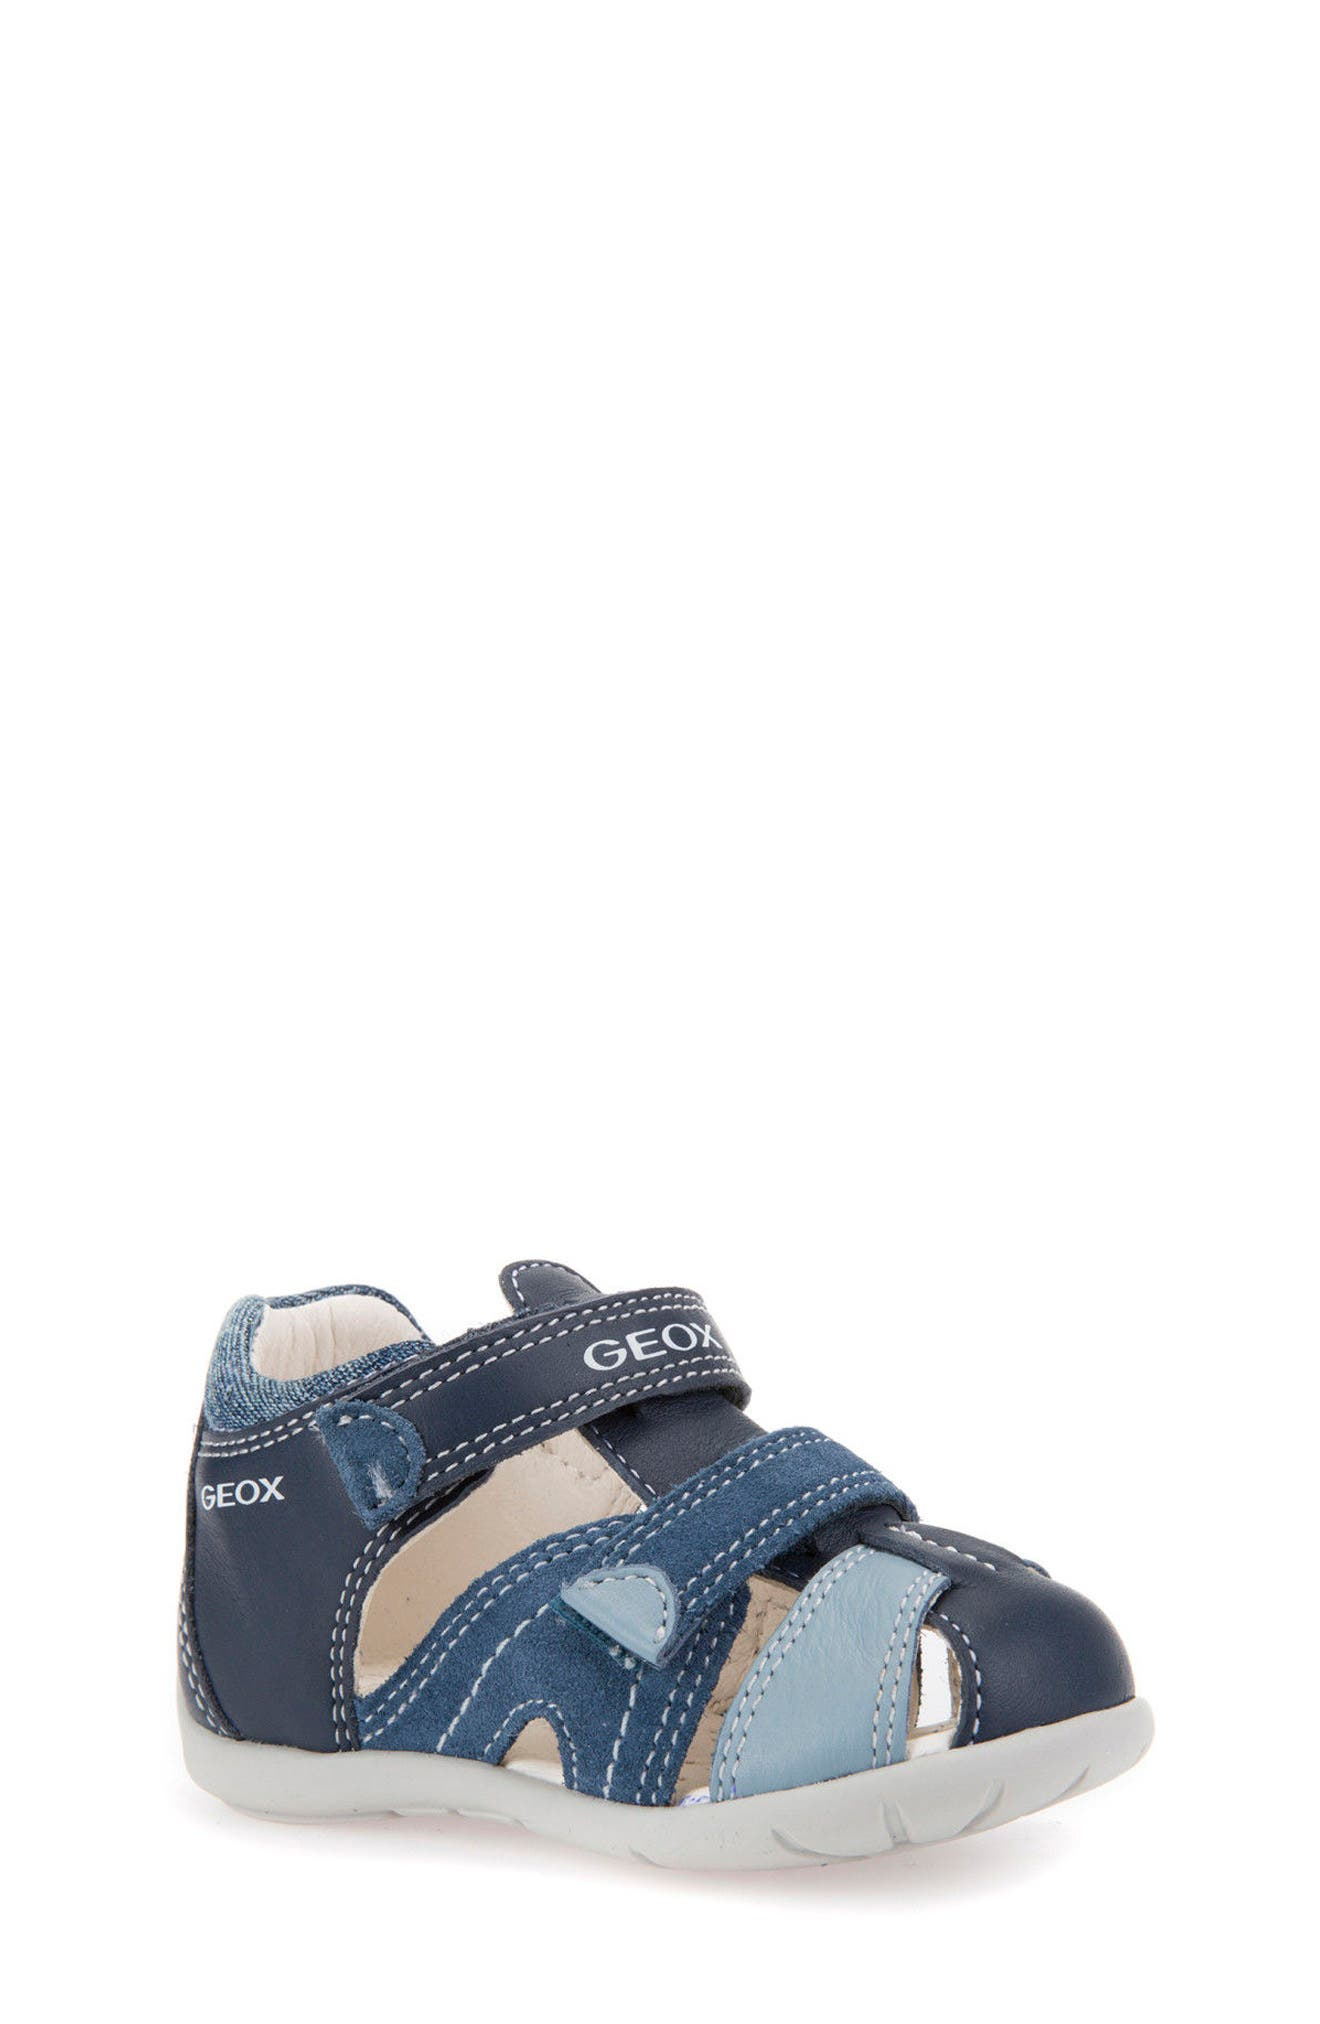 'Kaytan' Sandal,                             Main thumbnail 1, color,                             NAVY/ AVIO